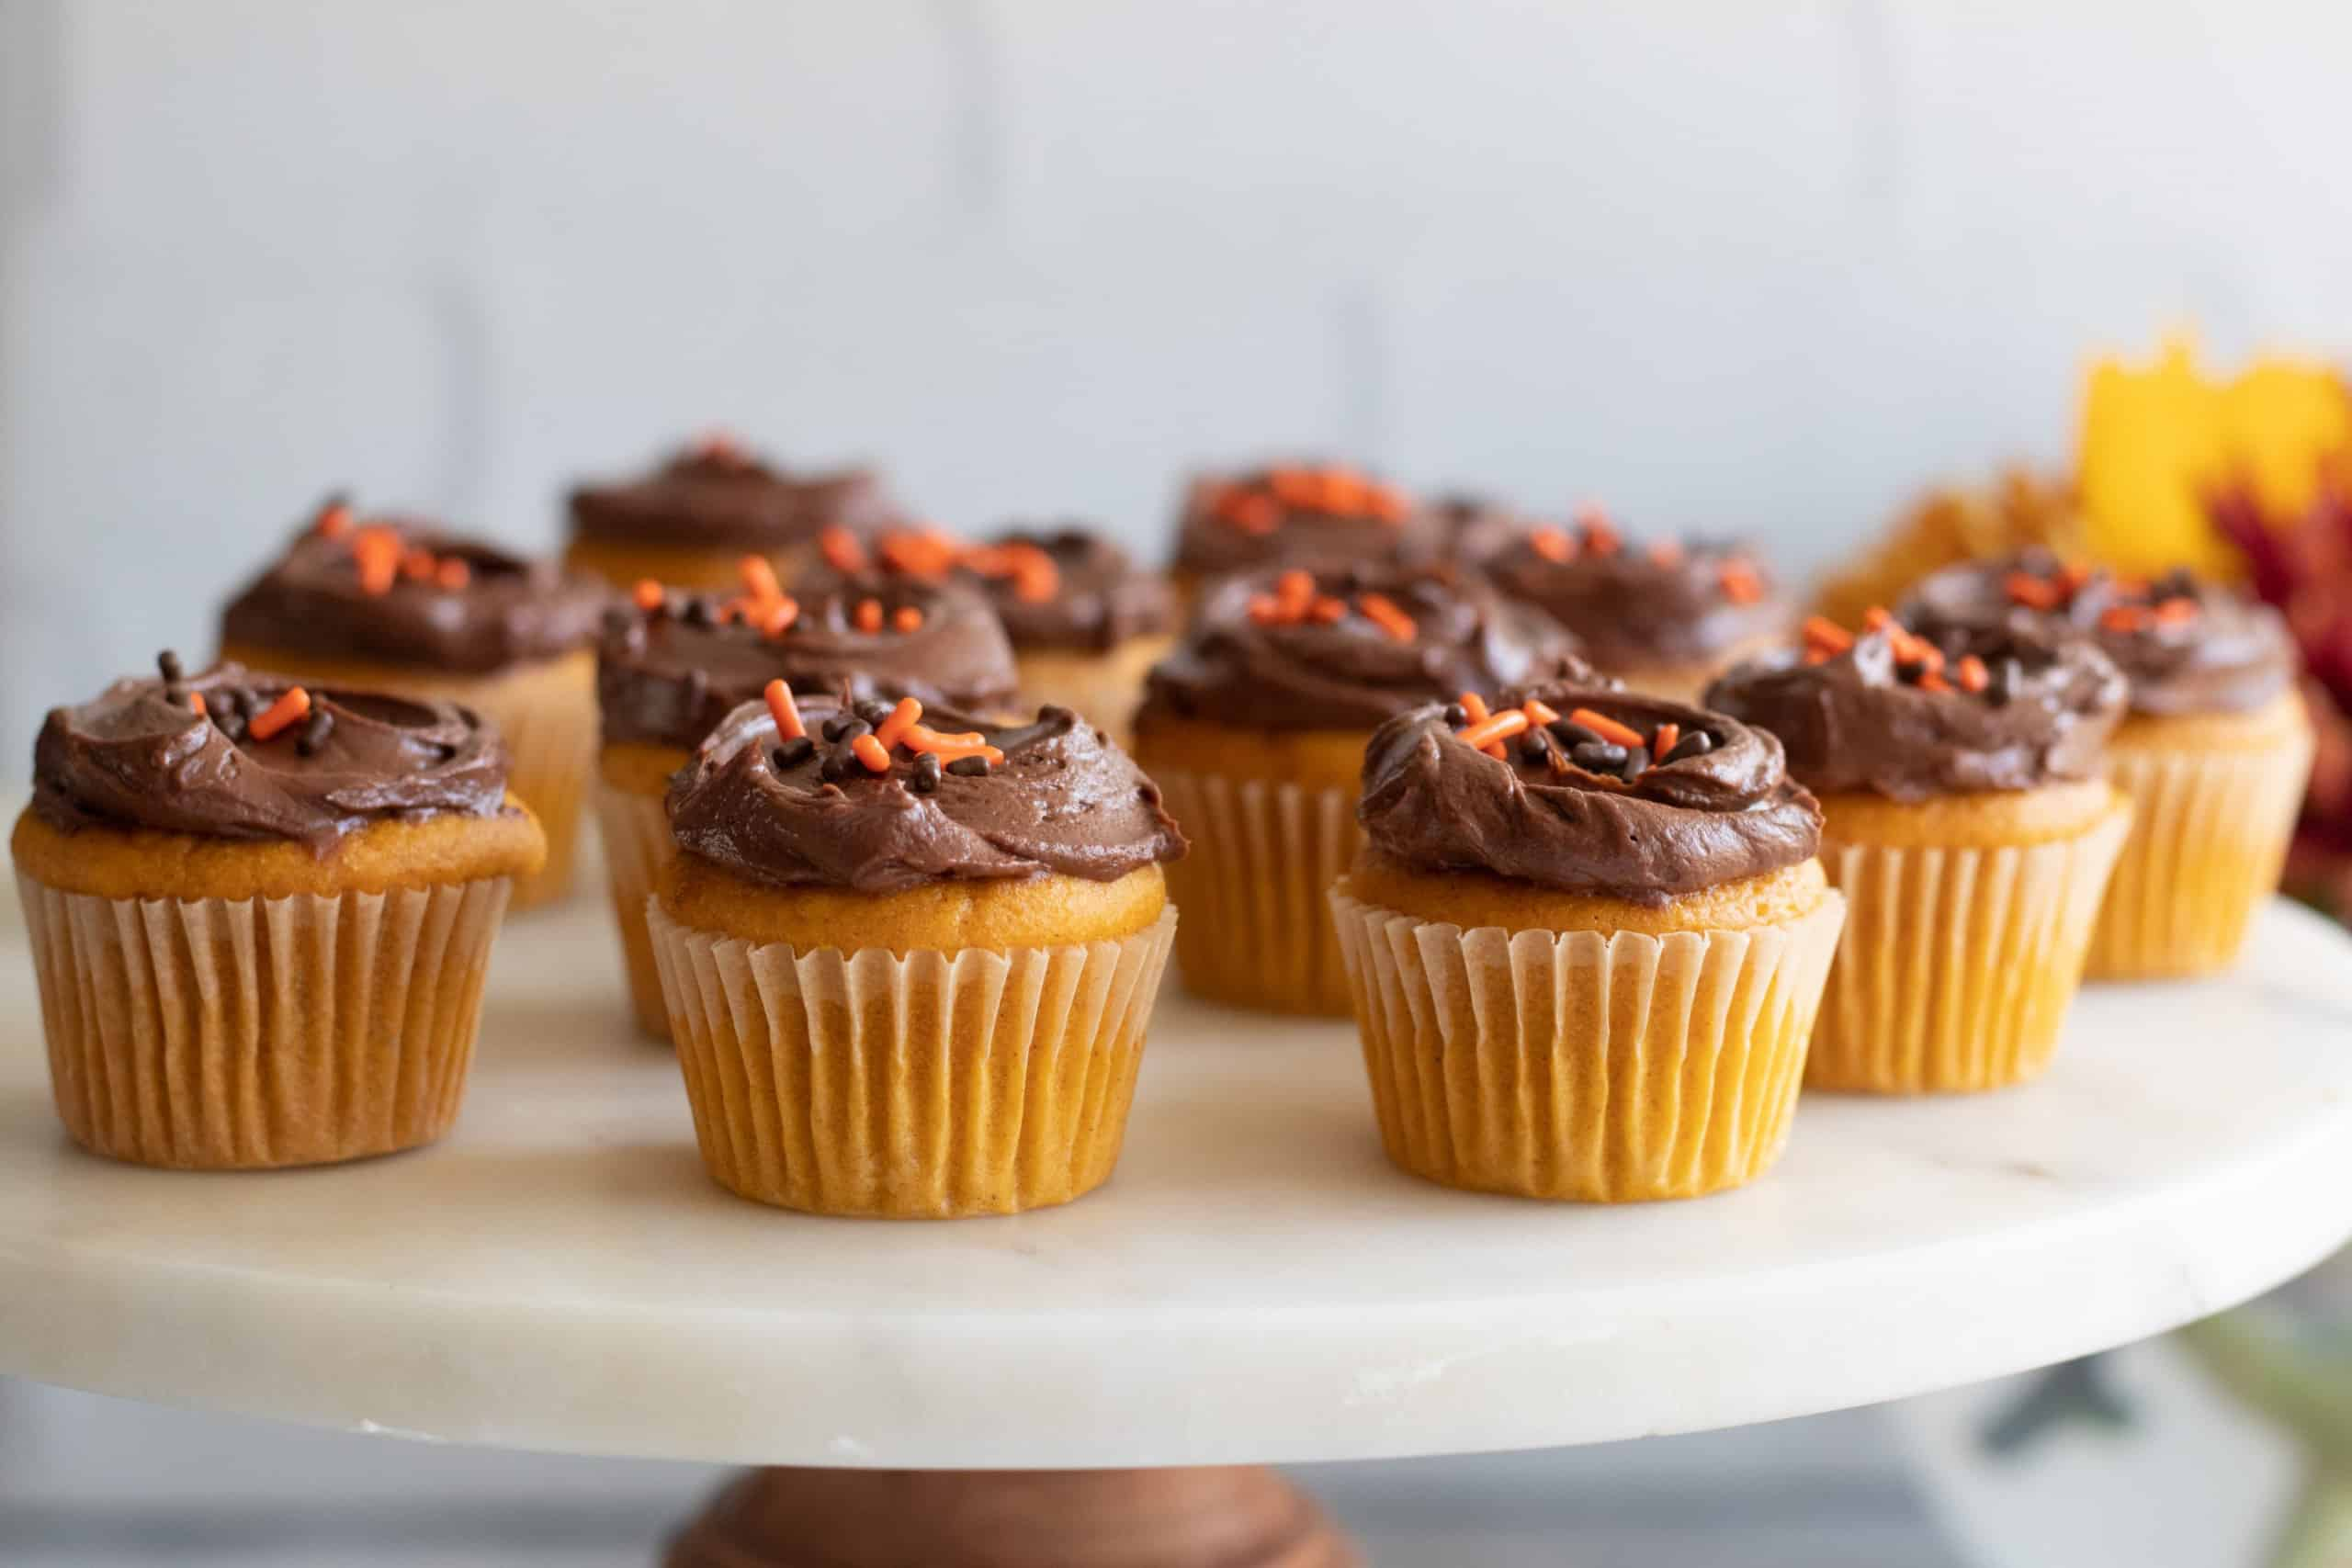 Grown-Up Halloween Sweets (Because The Kids Don't Get All The Fun!)